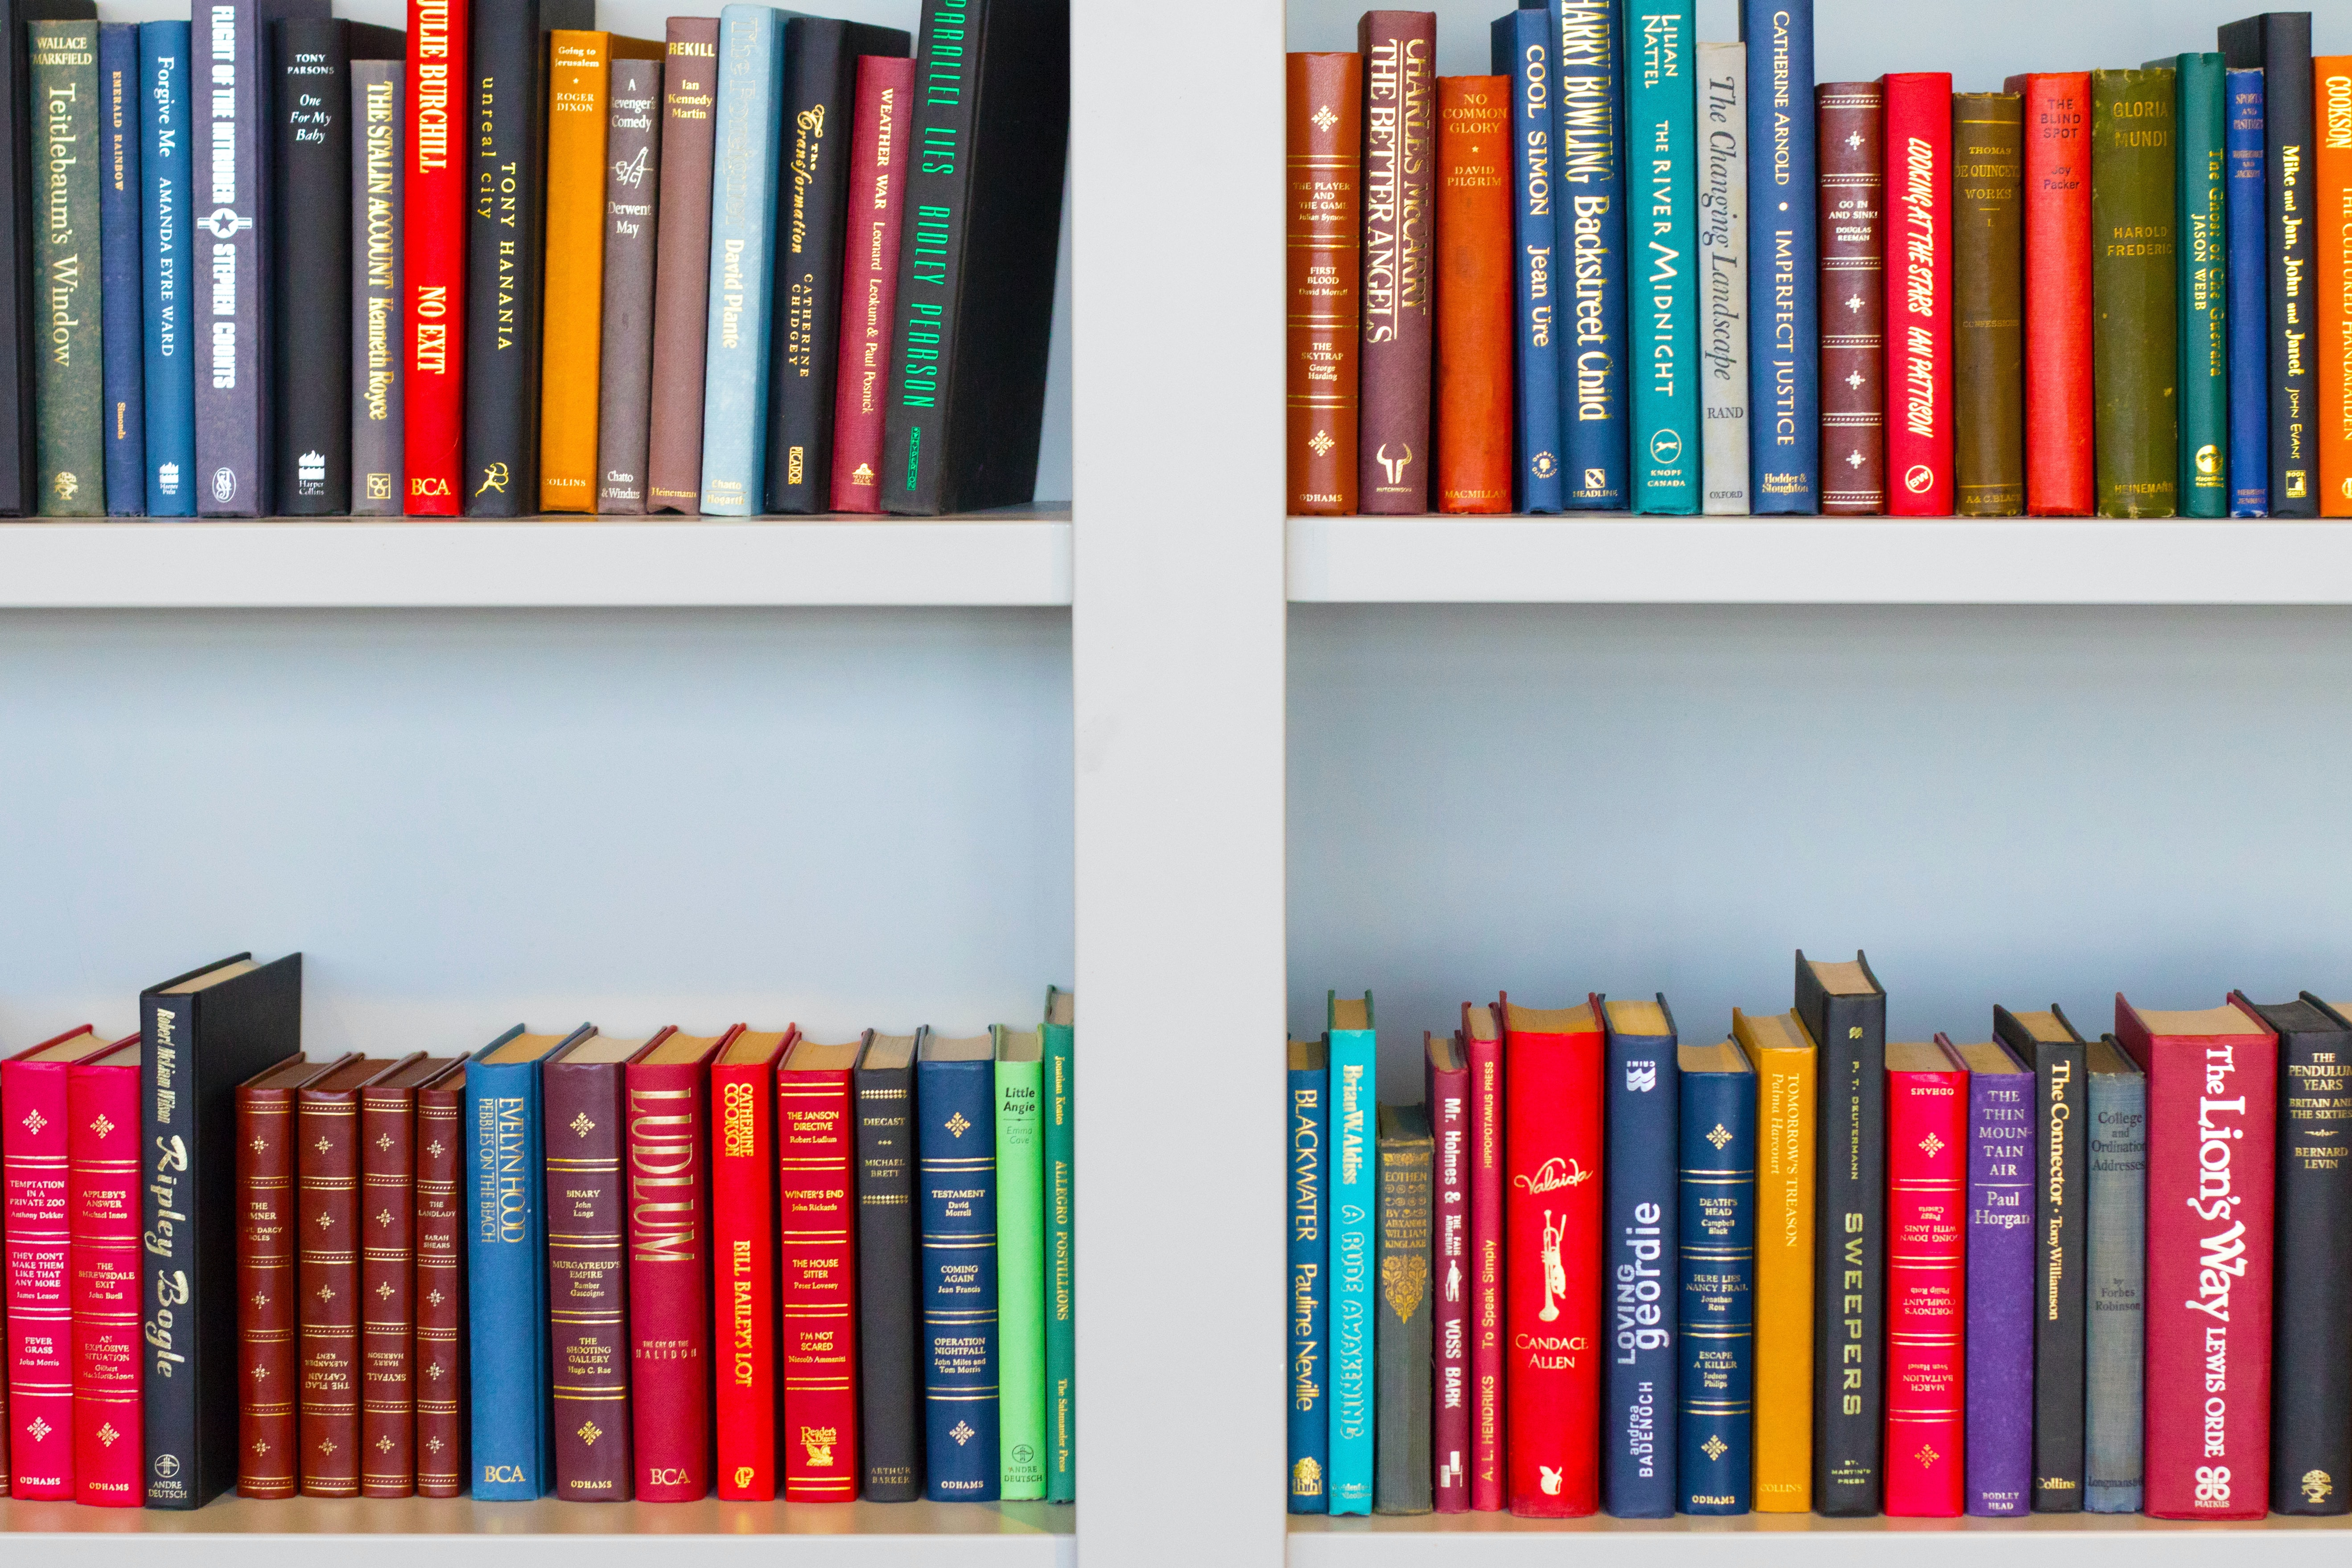 Picture of books on shelves